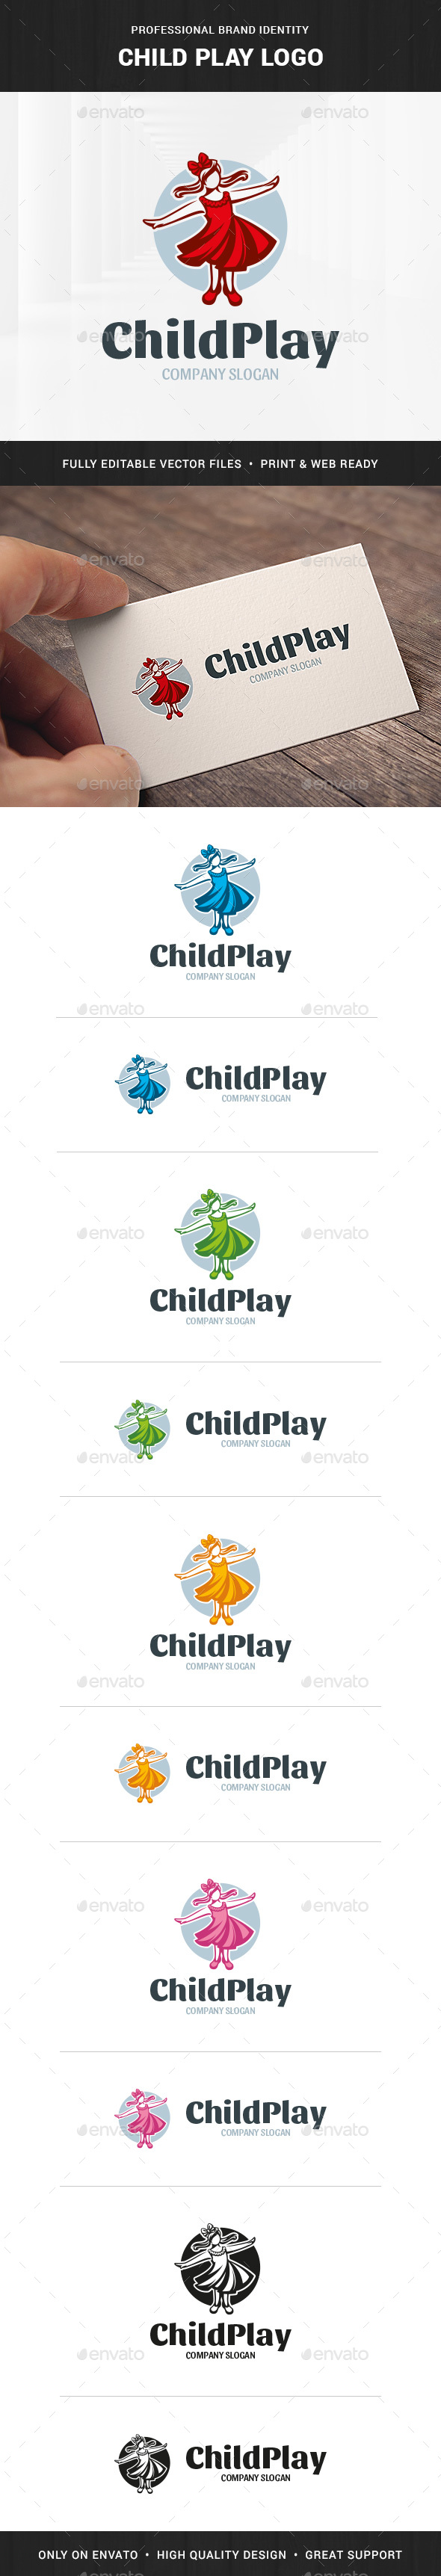 Child Play Logo Template